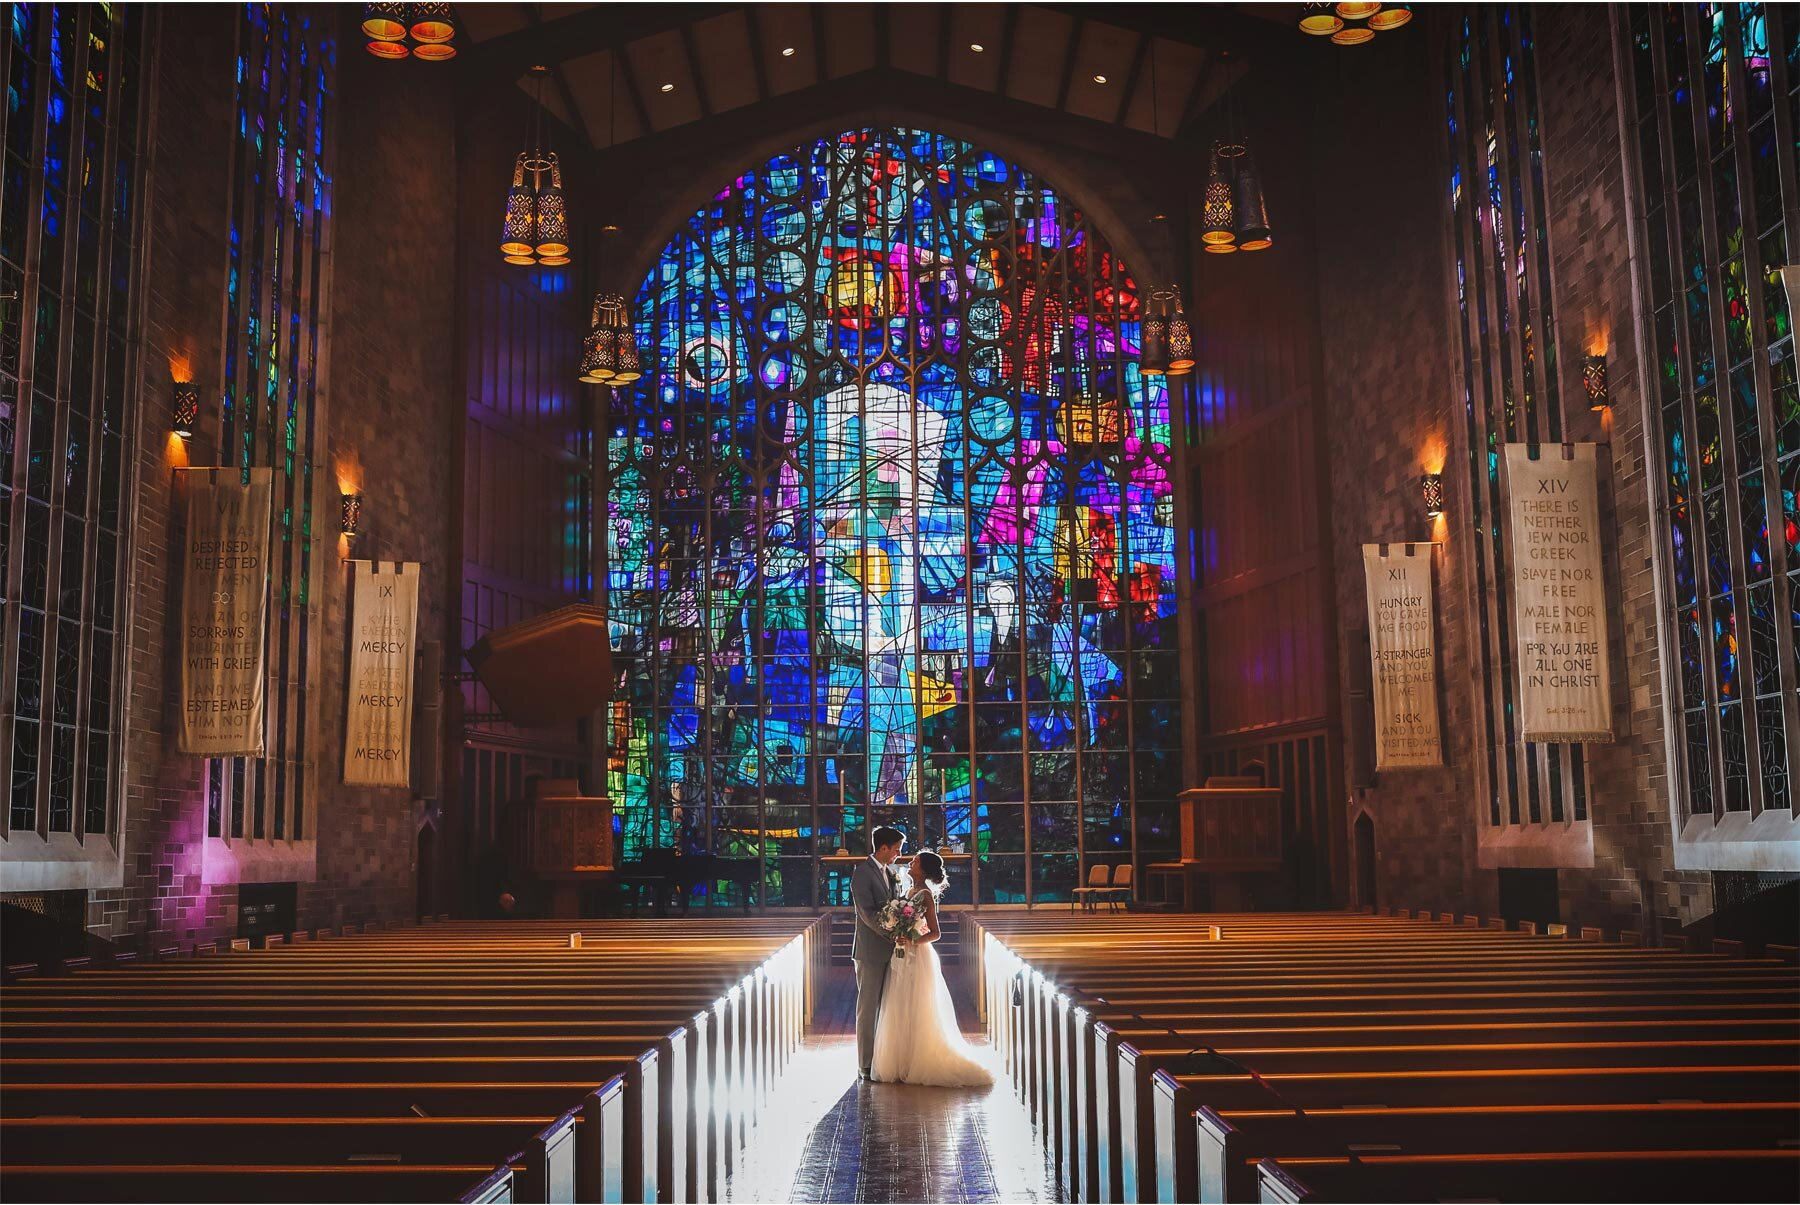 15-Wedding-by-Andrew-Vick-Photography-Chicago-Illinois-Alice-Millar-Chapel-Groom-Bride-Stained-Glass-Ashley-and-Nicholas.jpg